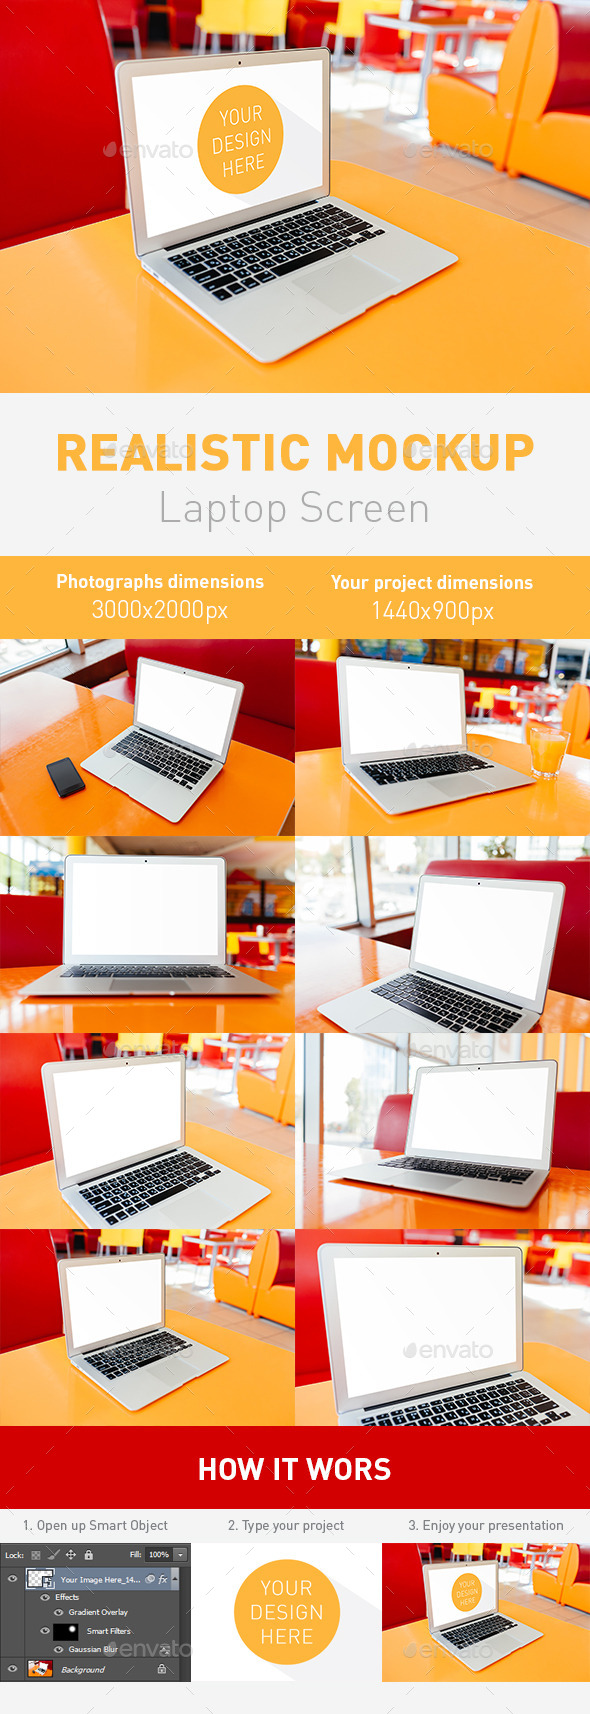 Realistic Laptop Screen Mockup - 8 PSD Files  - Laptop Displays